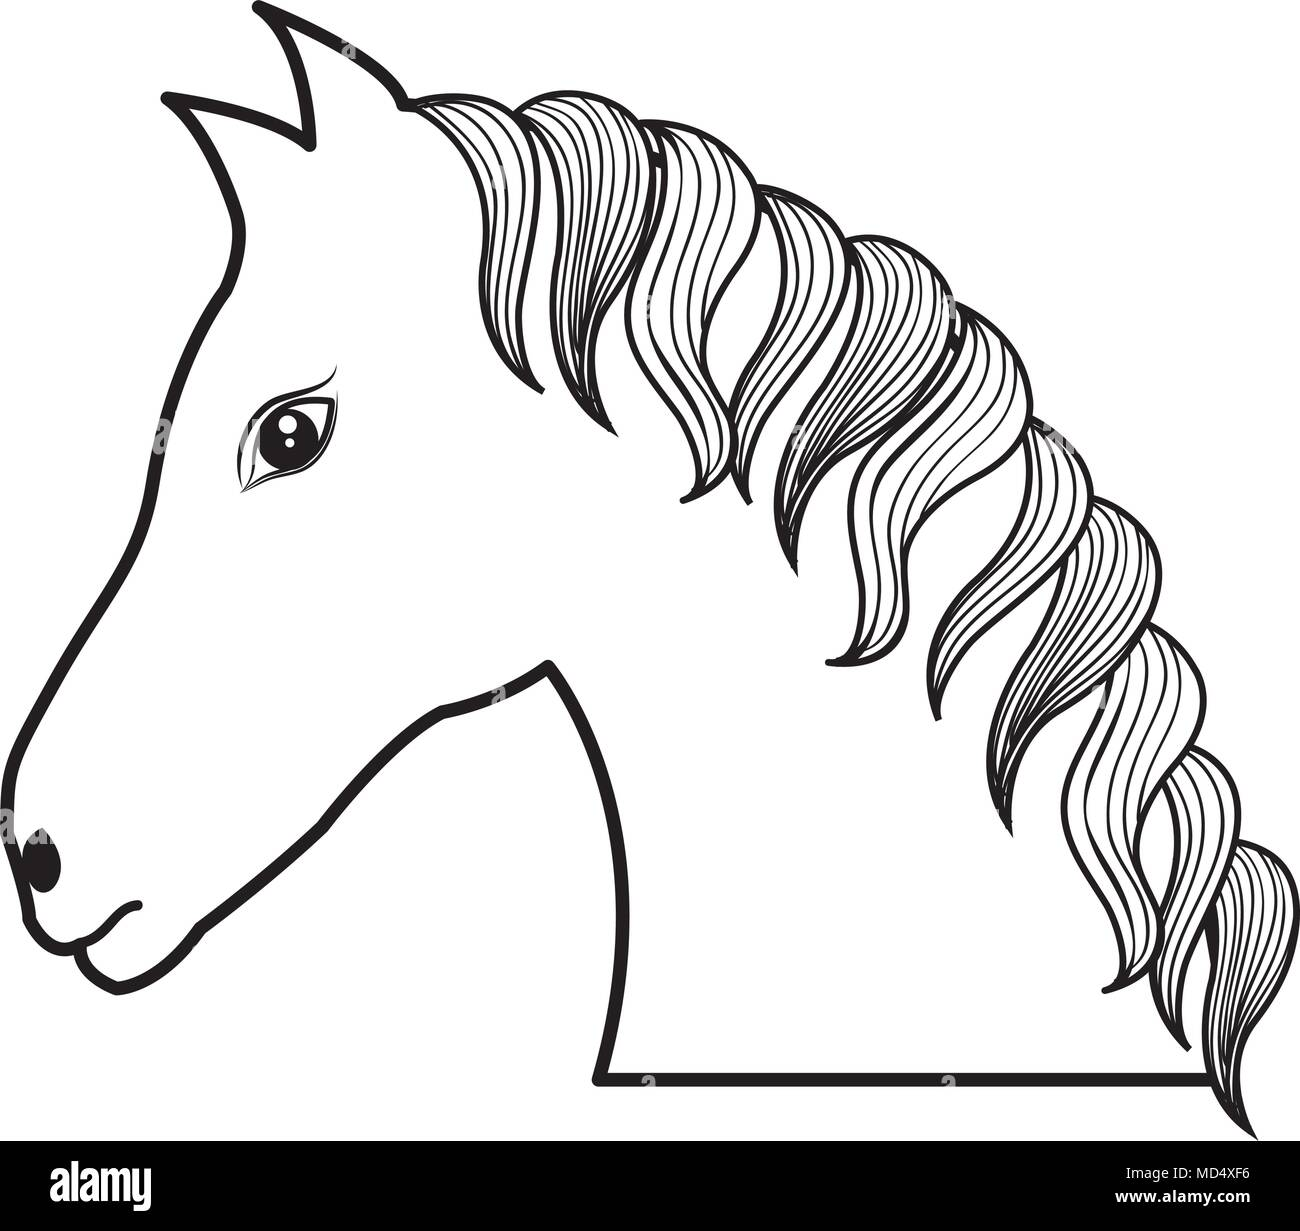 horse drawing isolated icon - Stock Image